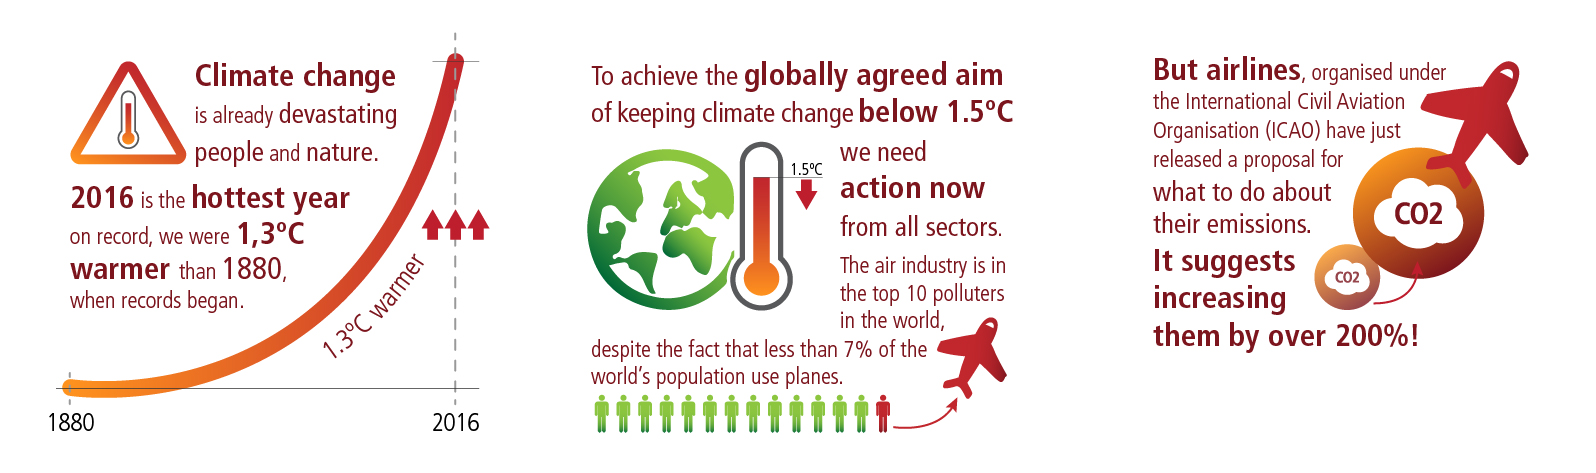 Aviation and Climate_by FERN